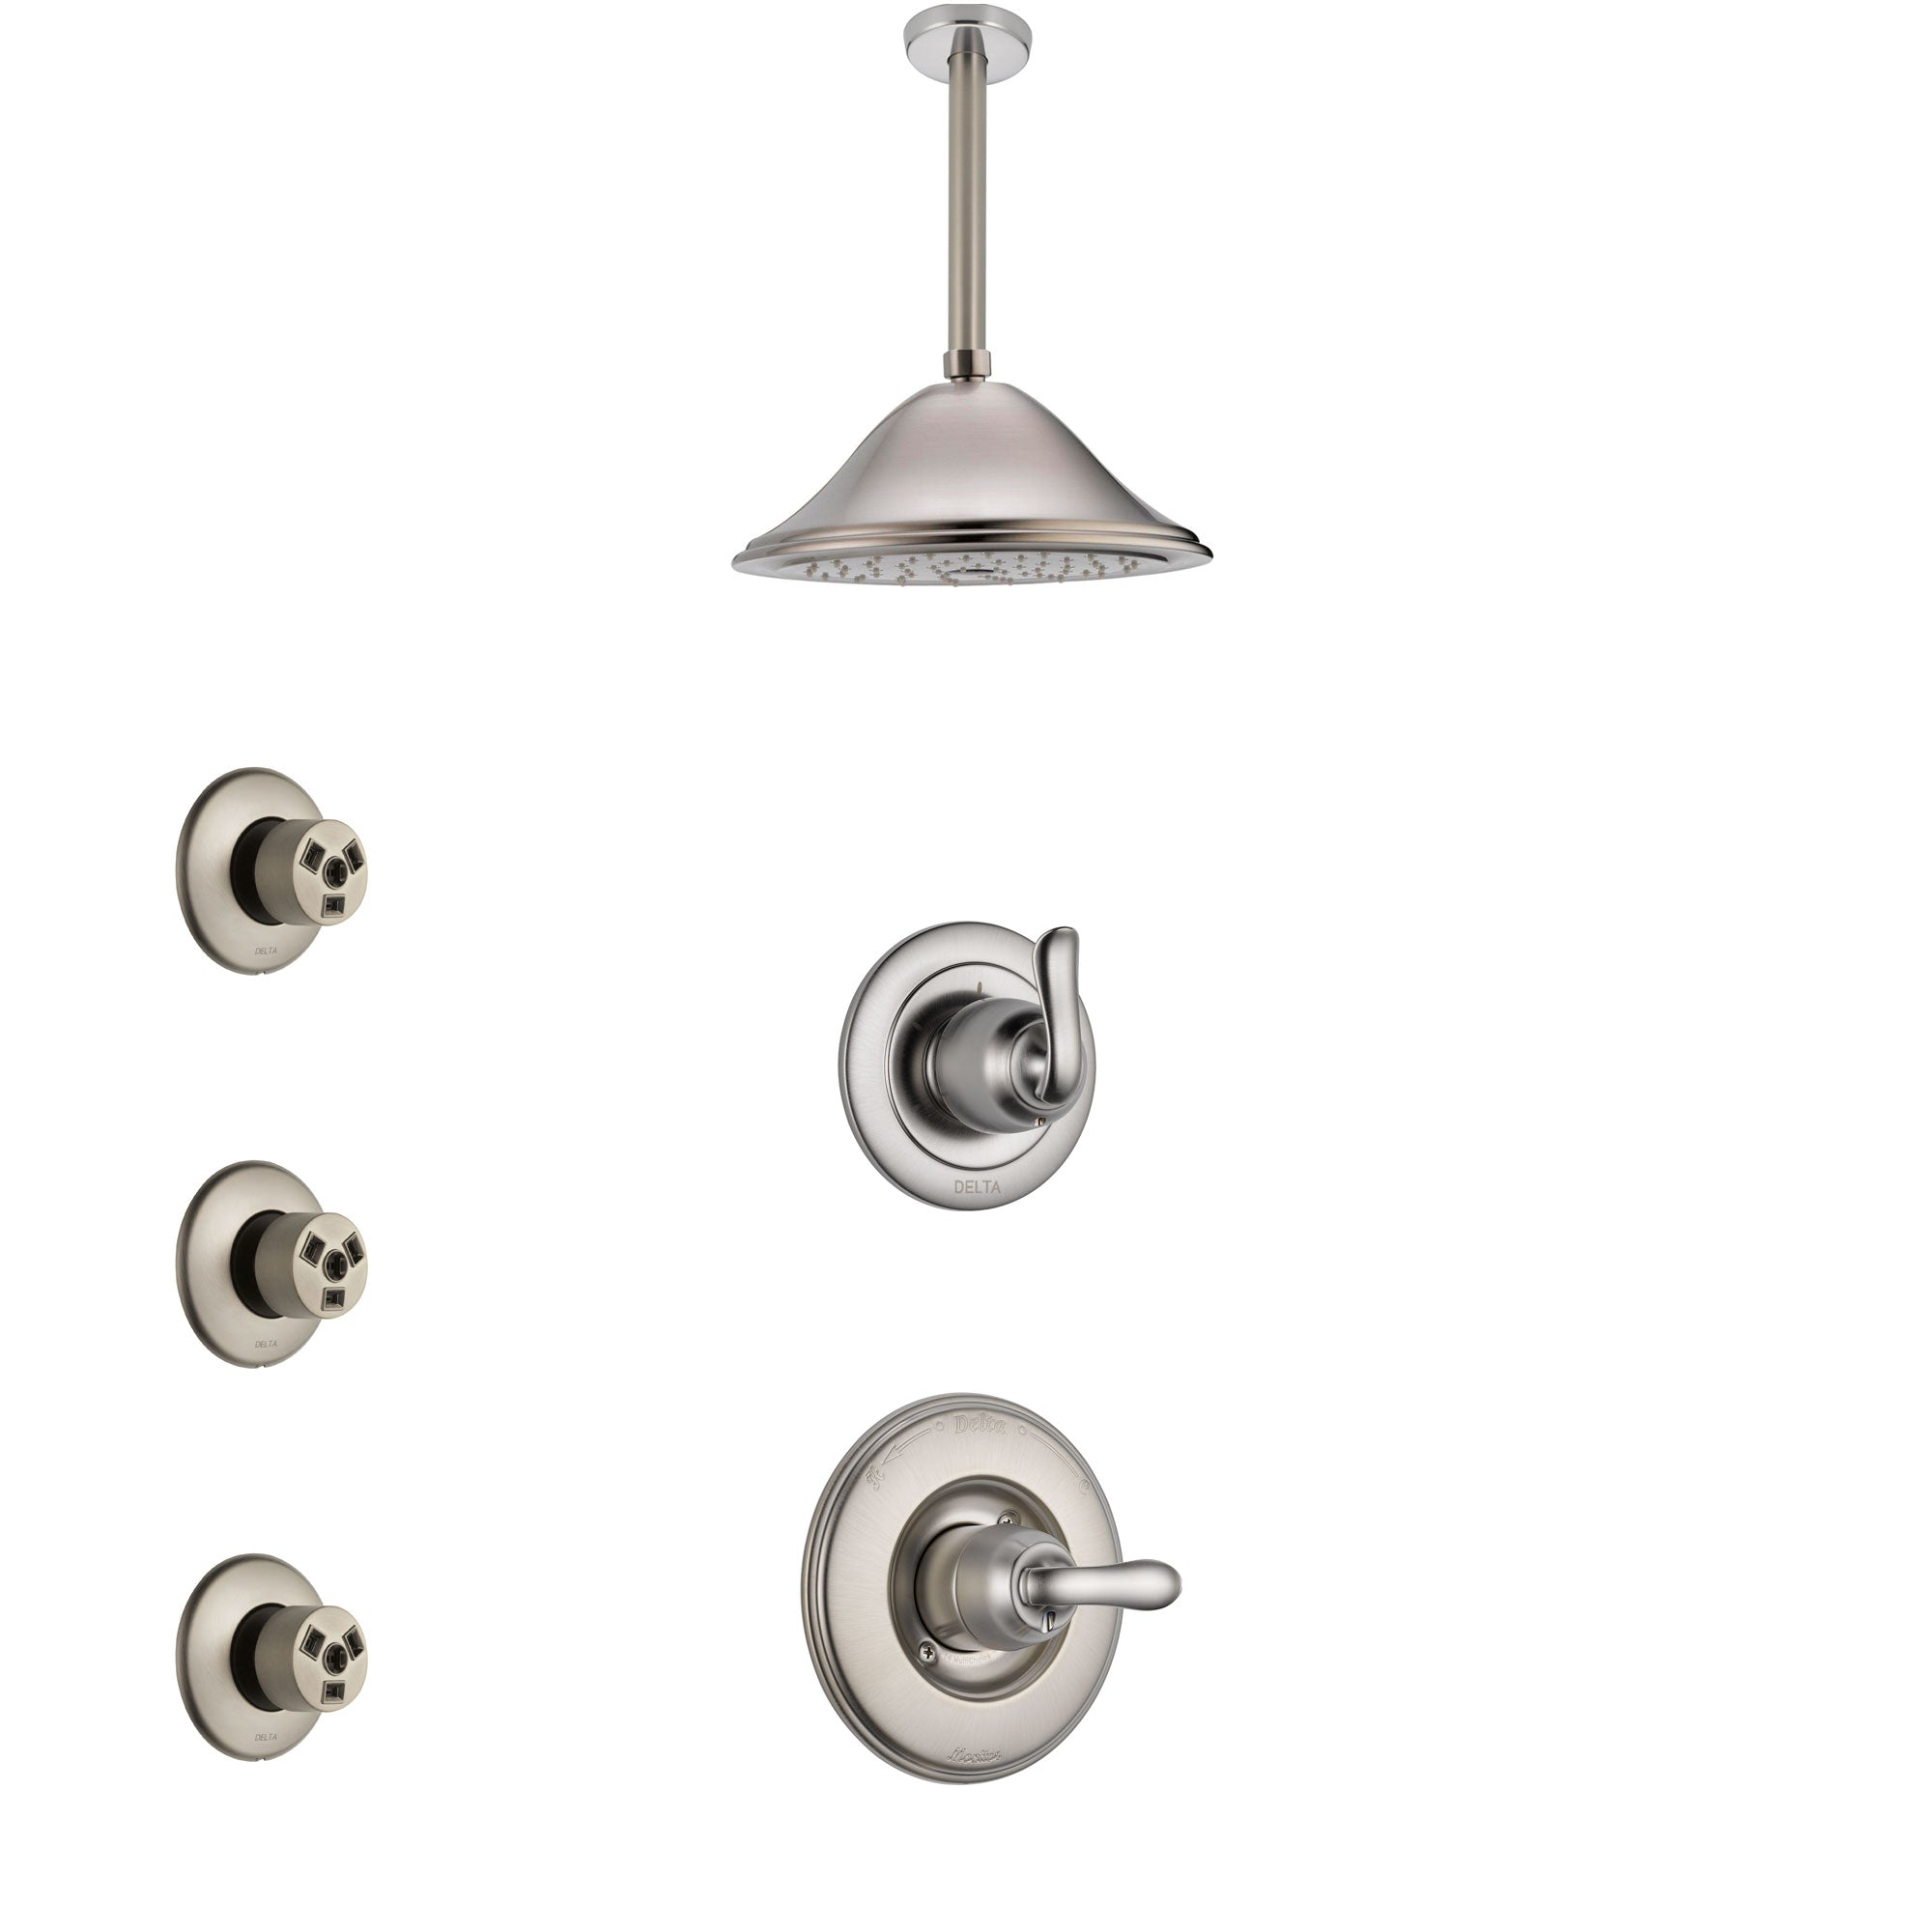 Delta Linden Stainless Steel Finish Shower System with Control Handle, 3-Setting Diverter, Ceiling Mount Showerhead, and 3 Body Sprays SS1494SS7